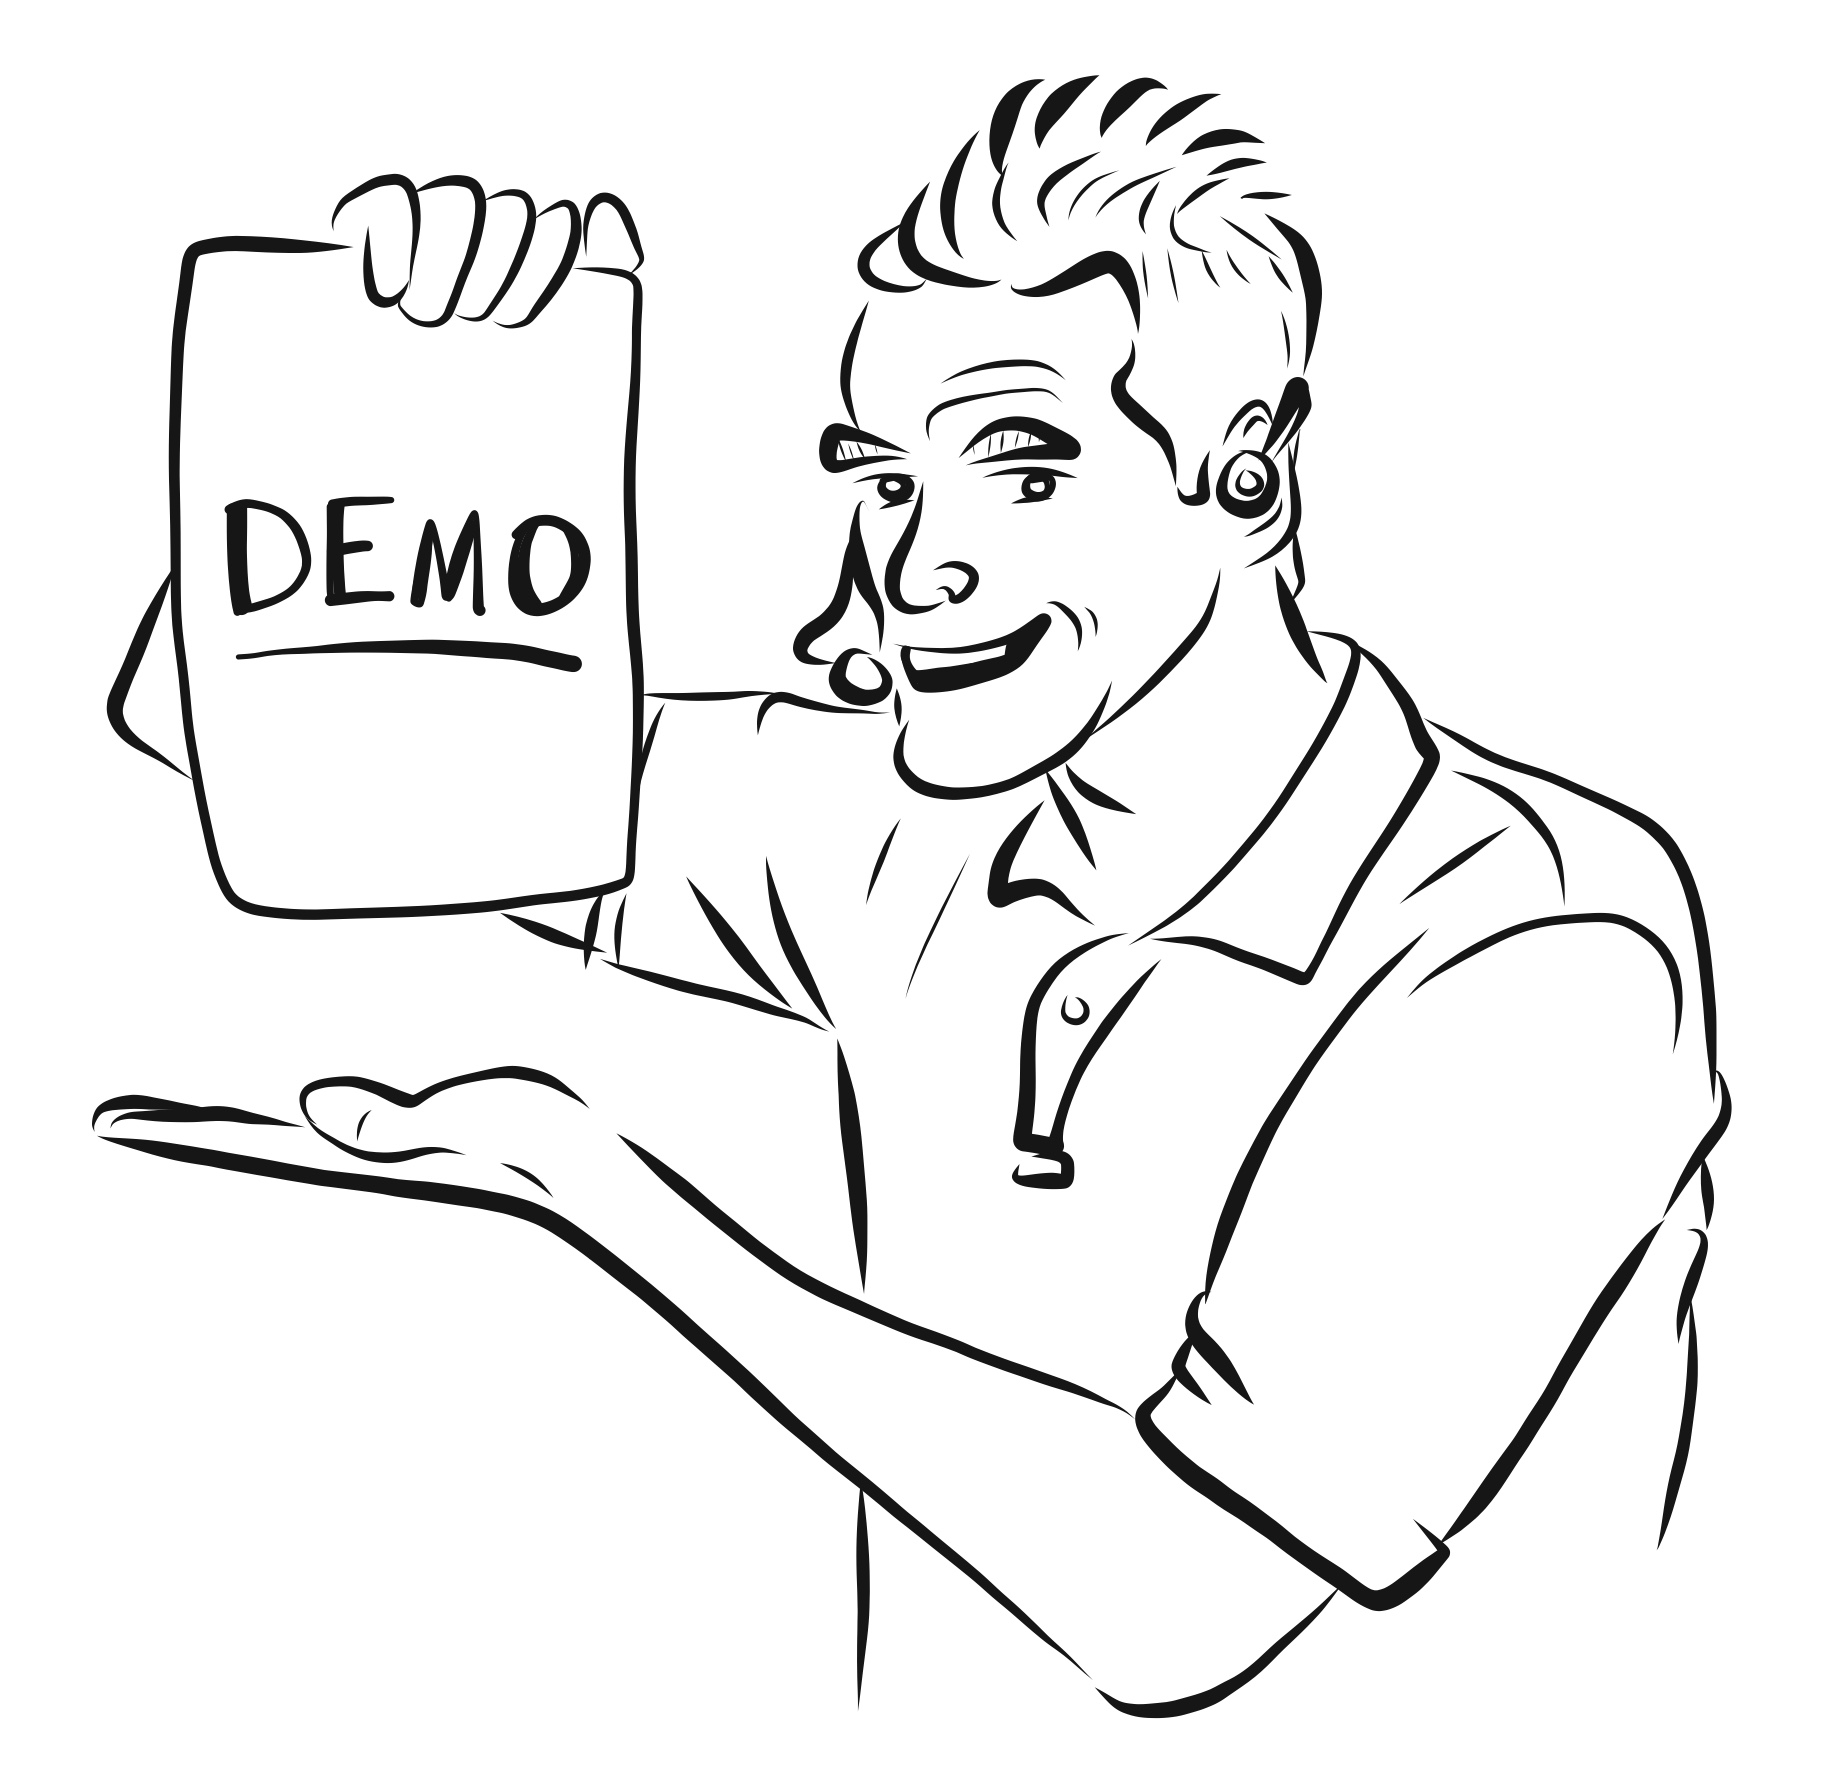 Demo version 2